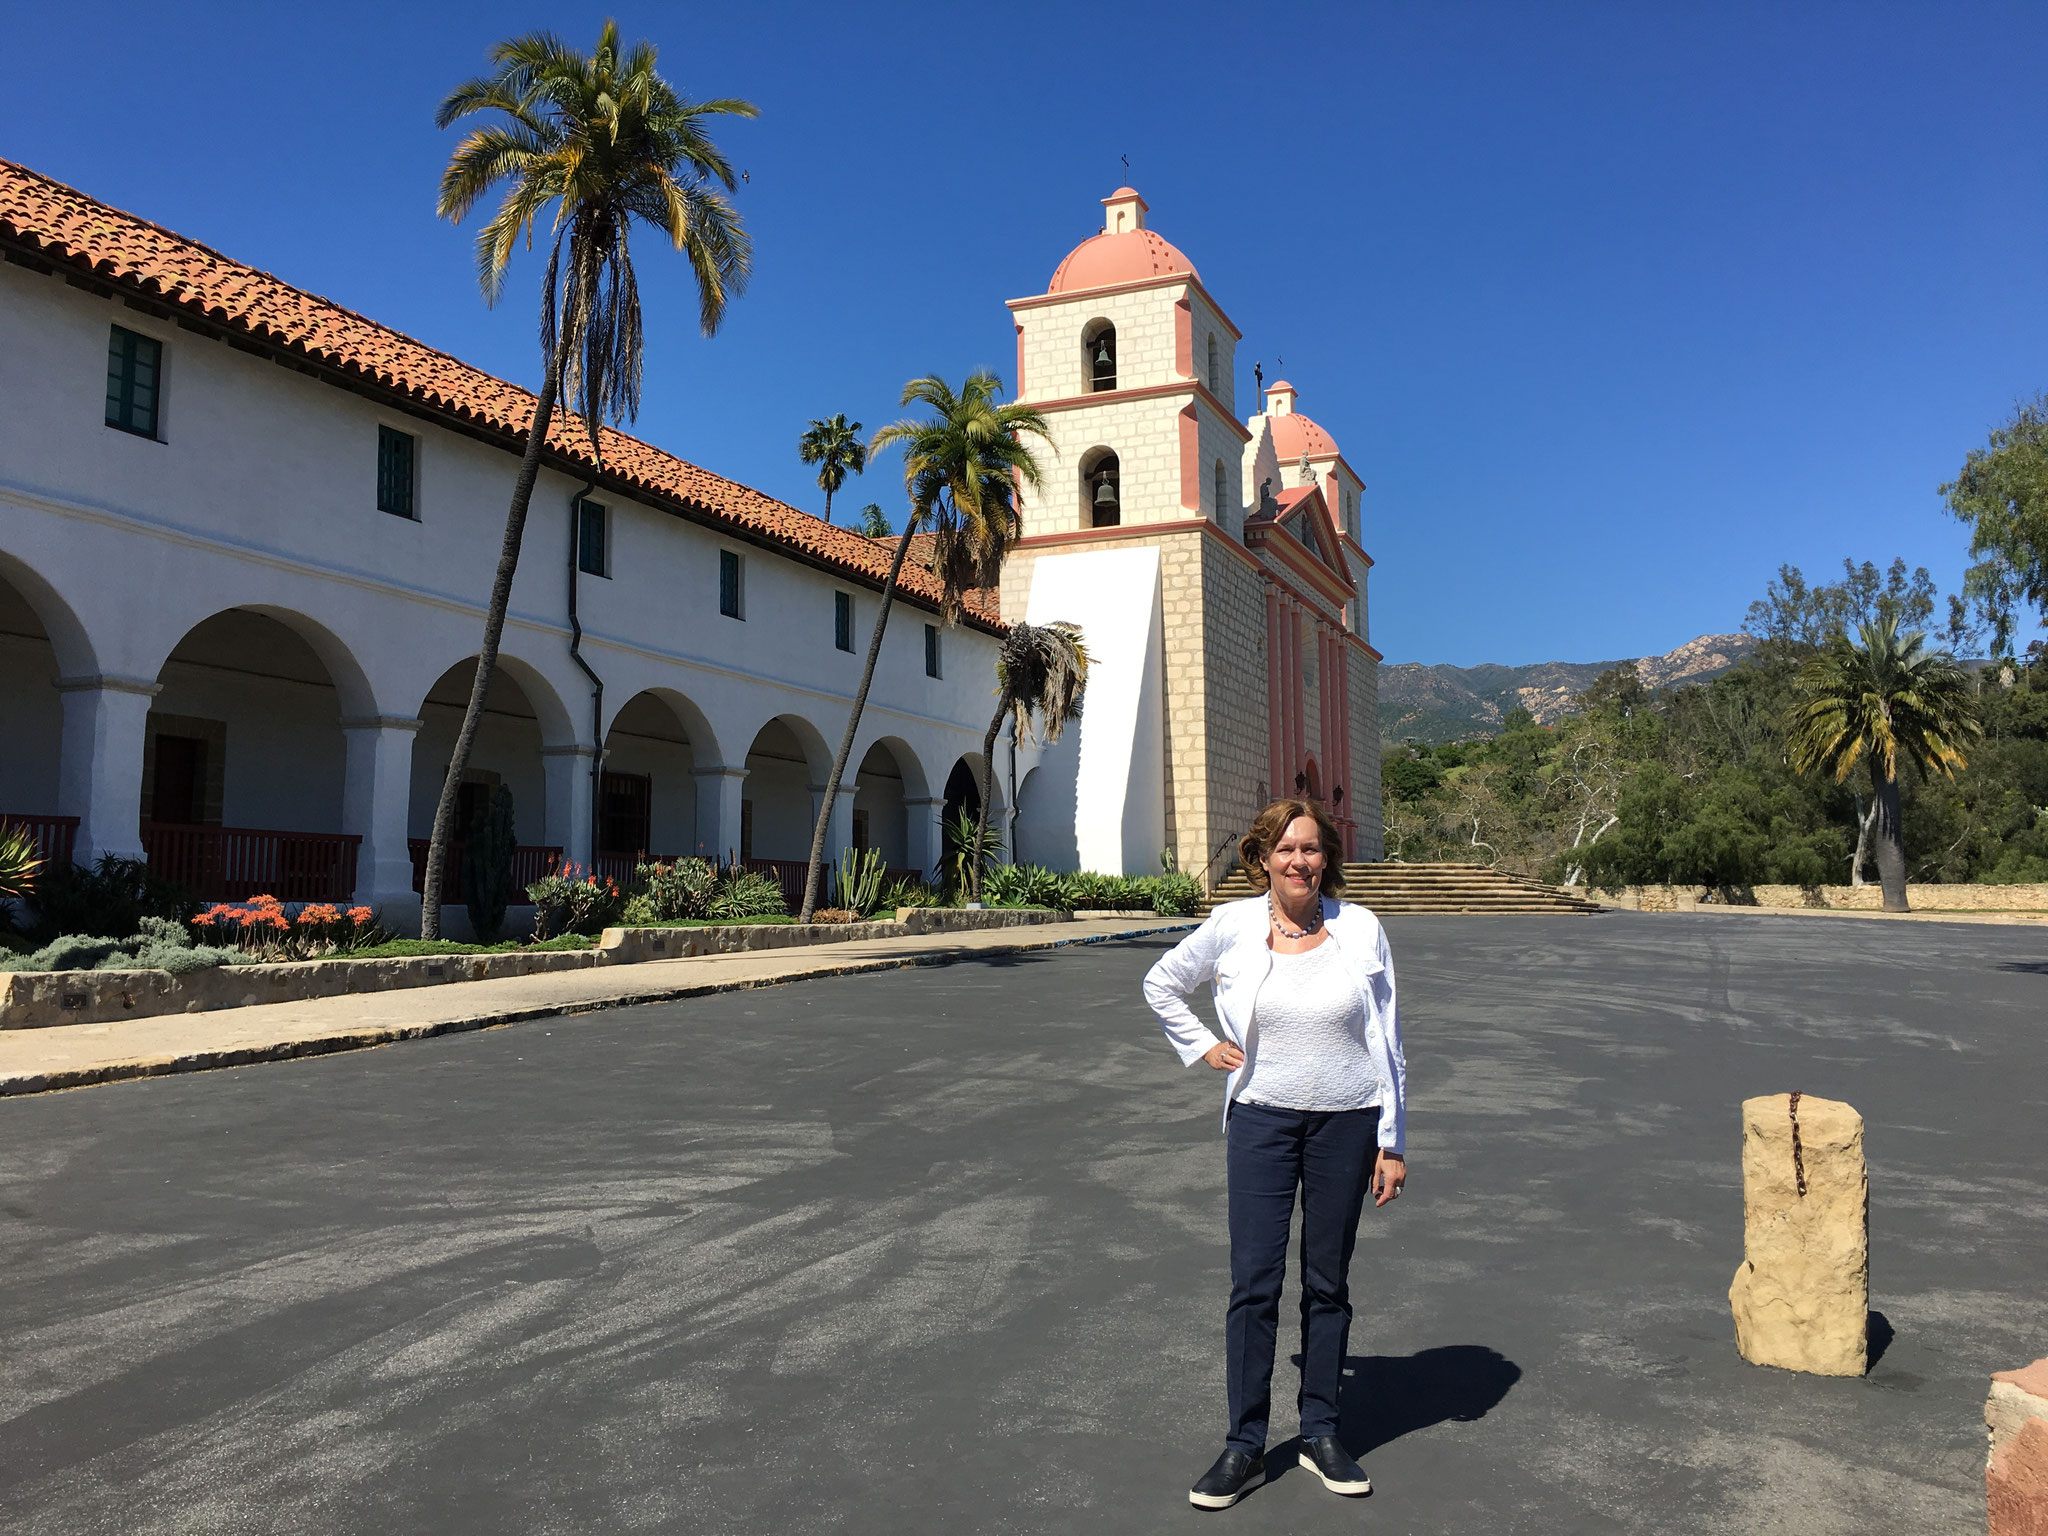 Lorraine at the Santa Barbara mission, March 2017, Santa Barbara, CA